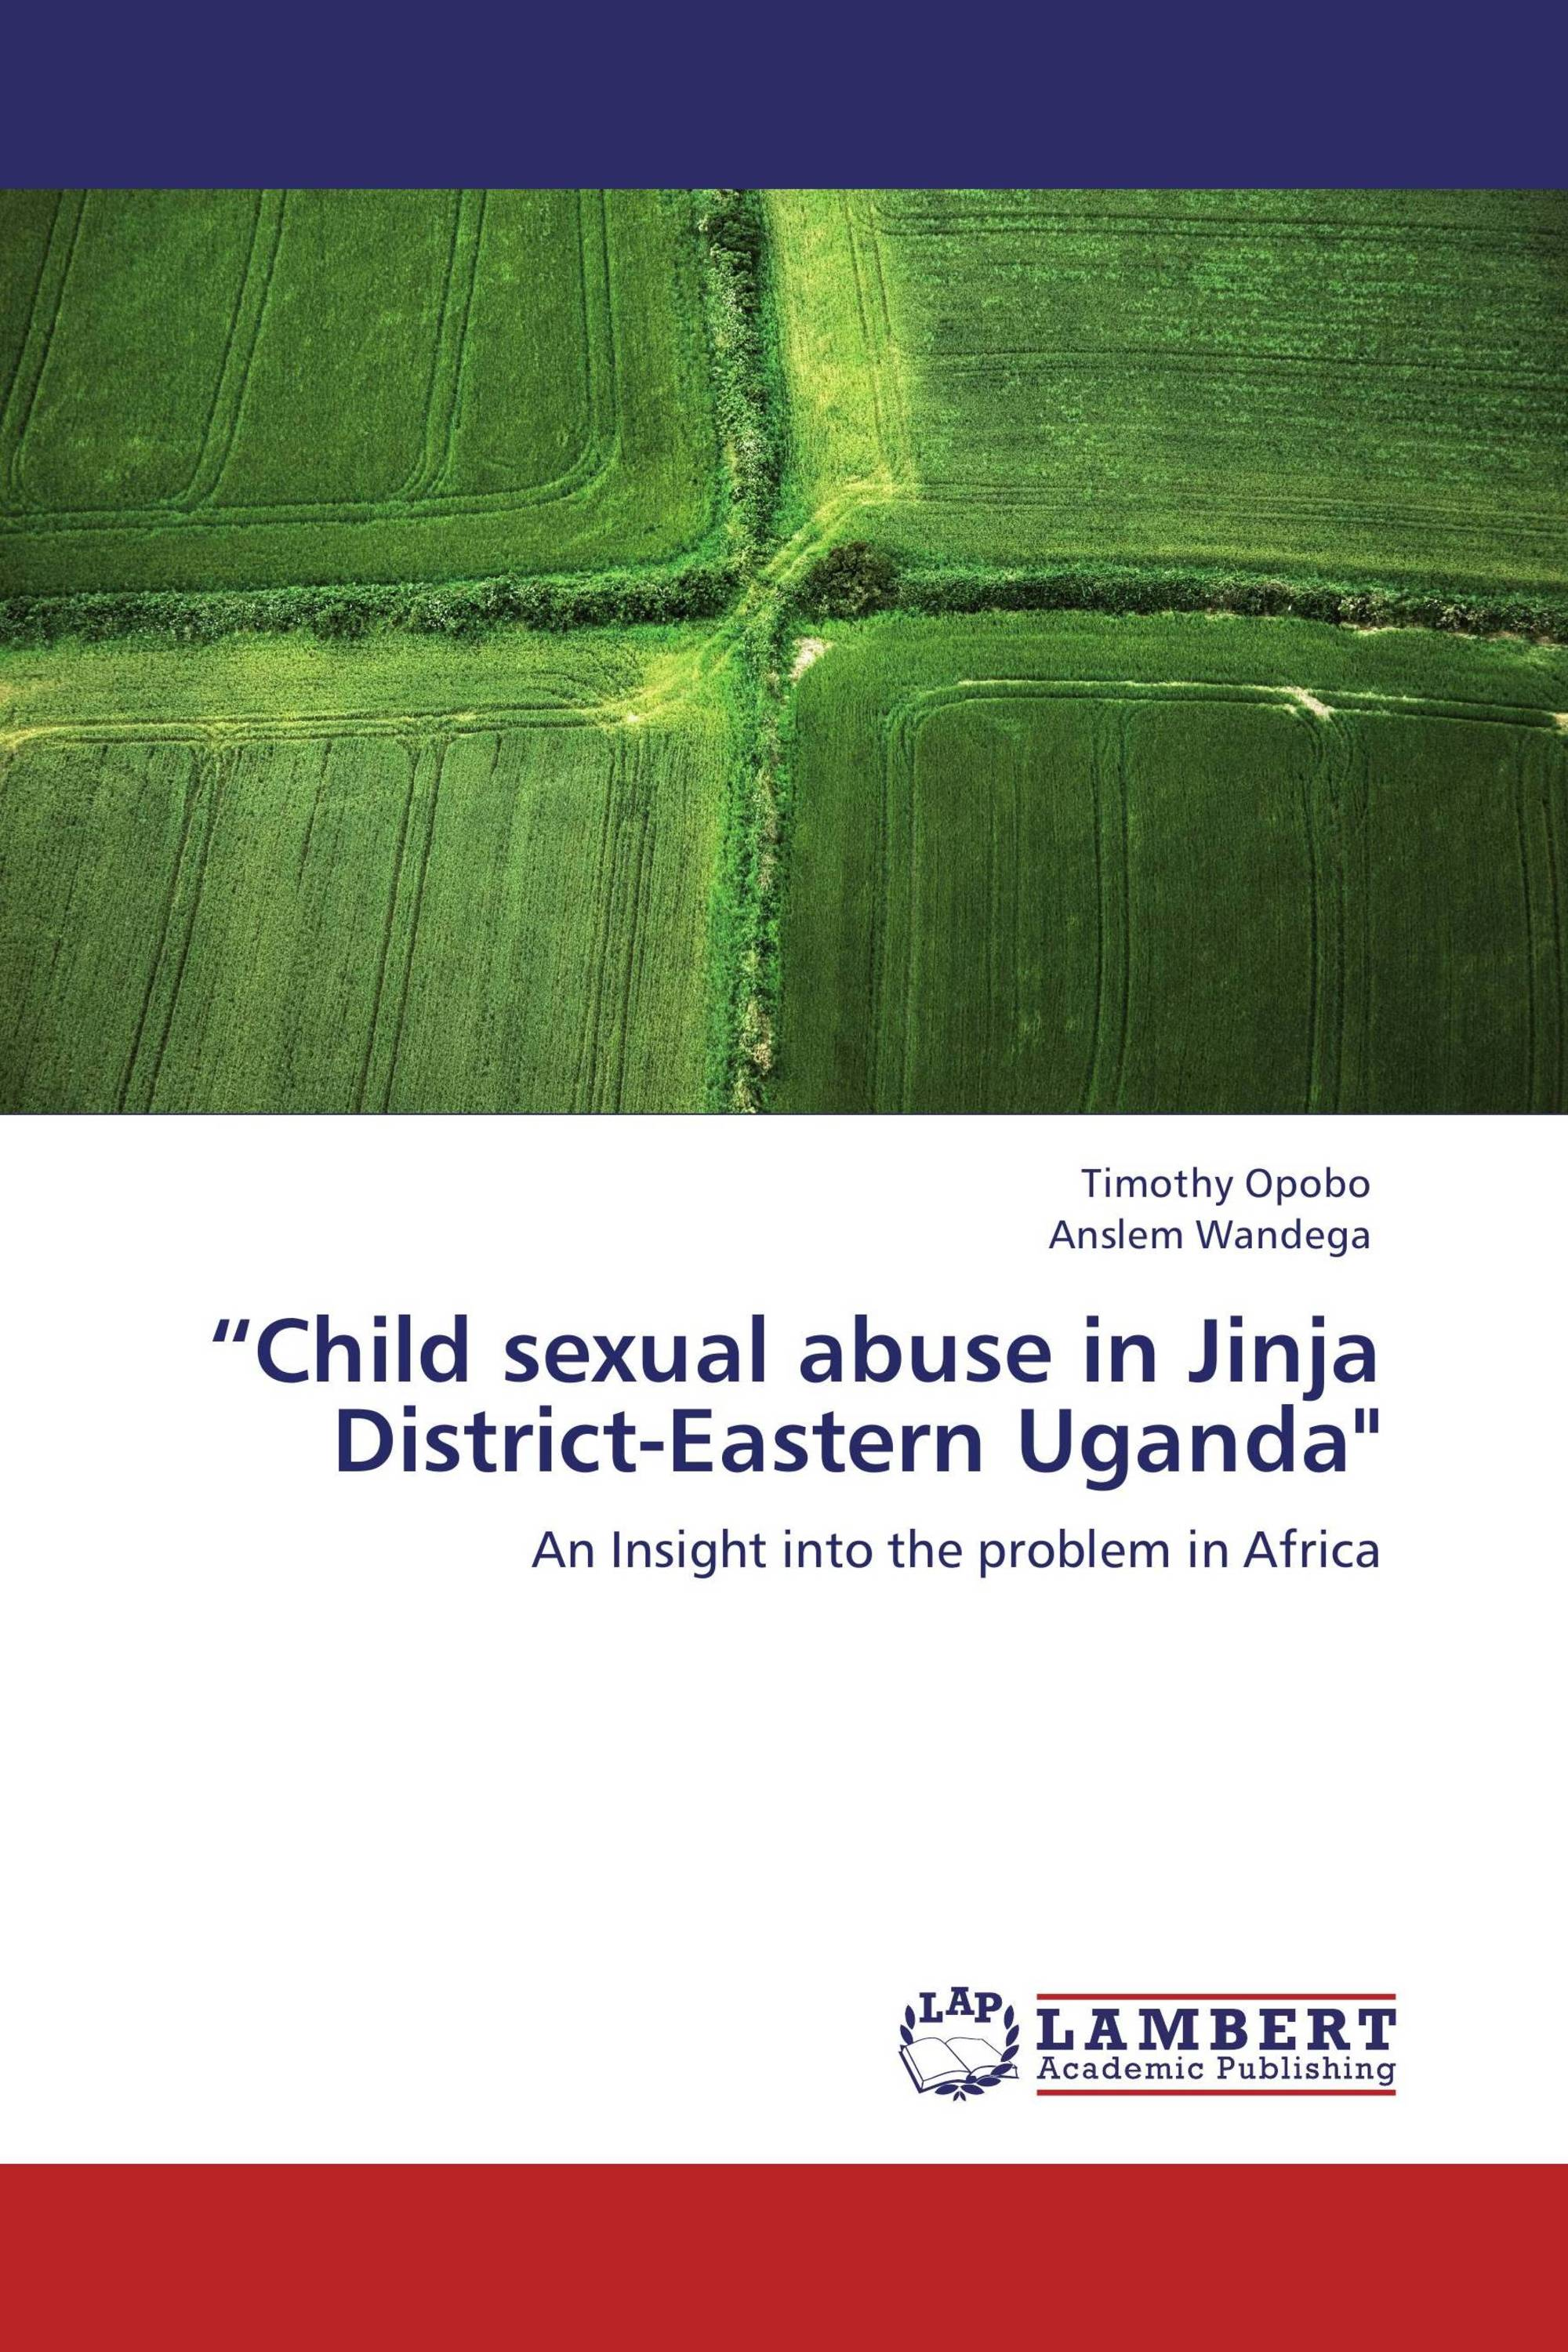 an insight into possible causes of child sexual abuse Child sexual abuse is a form of child abuse that includes sexual activity with a minor a child cannot consent to any form of sexual activity, period.